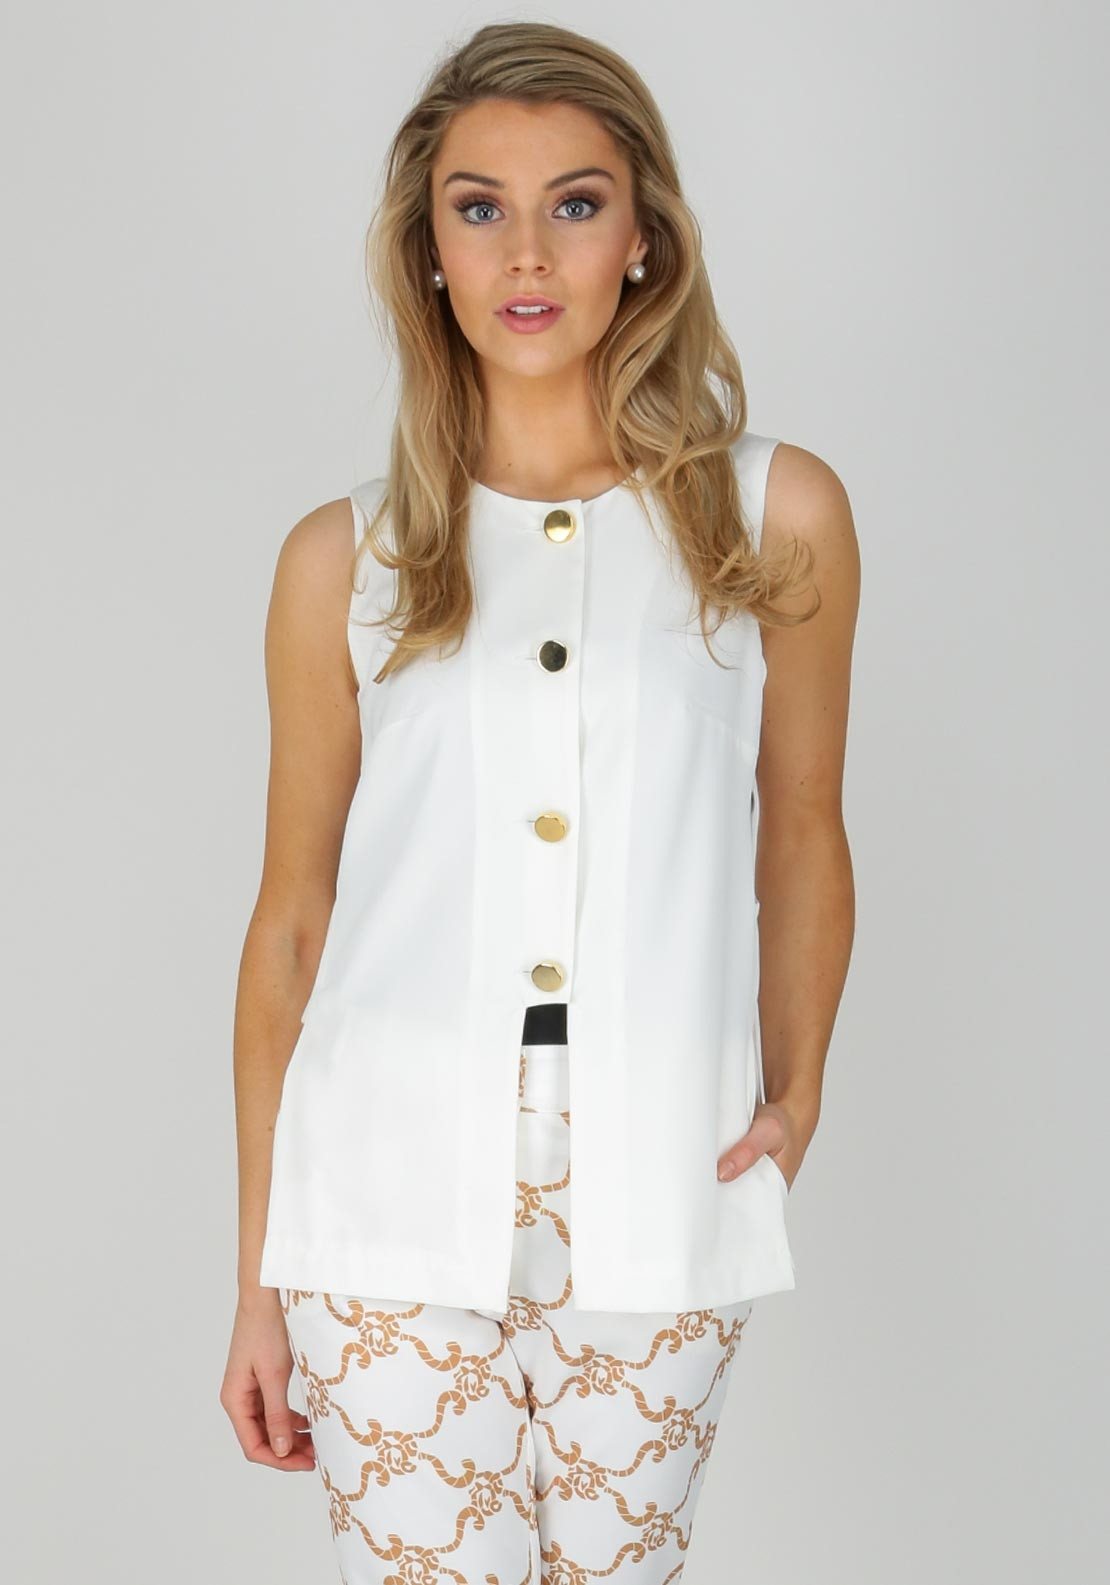 5b09483d9357f Camelot Open Side Button Down Top, White. Be the first to review this  product